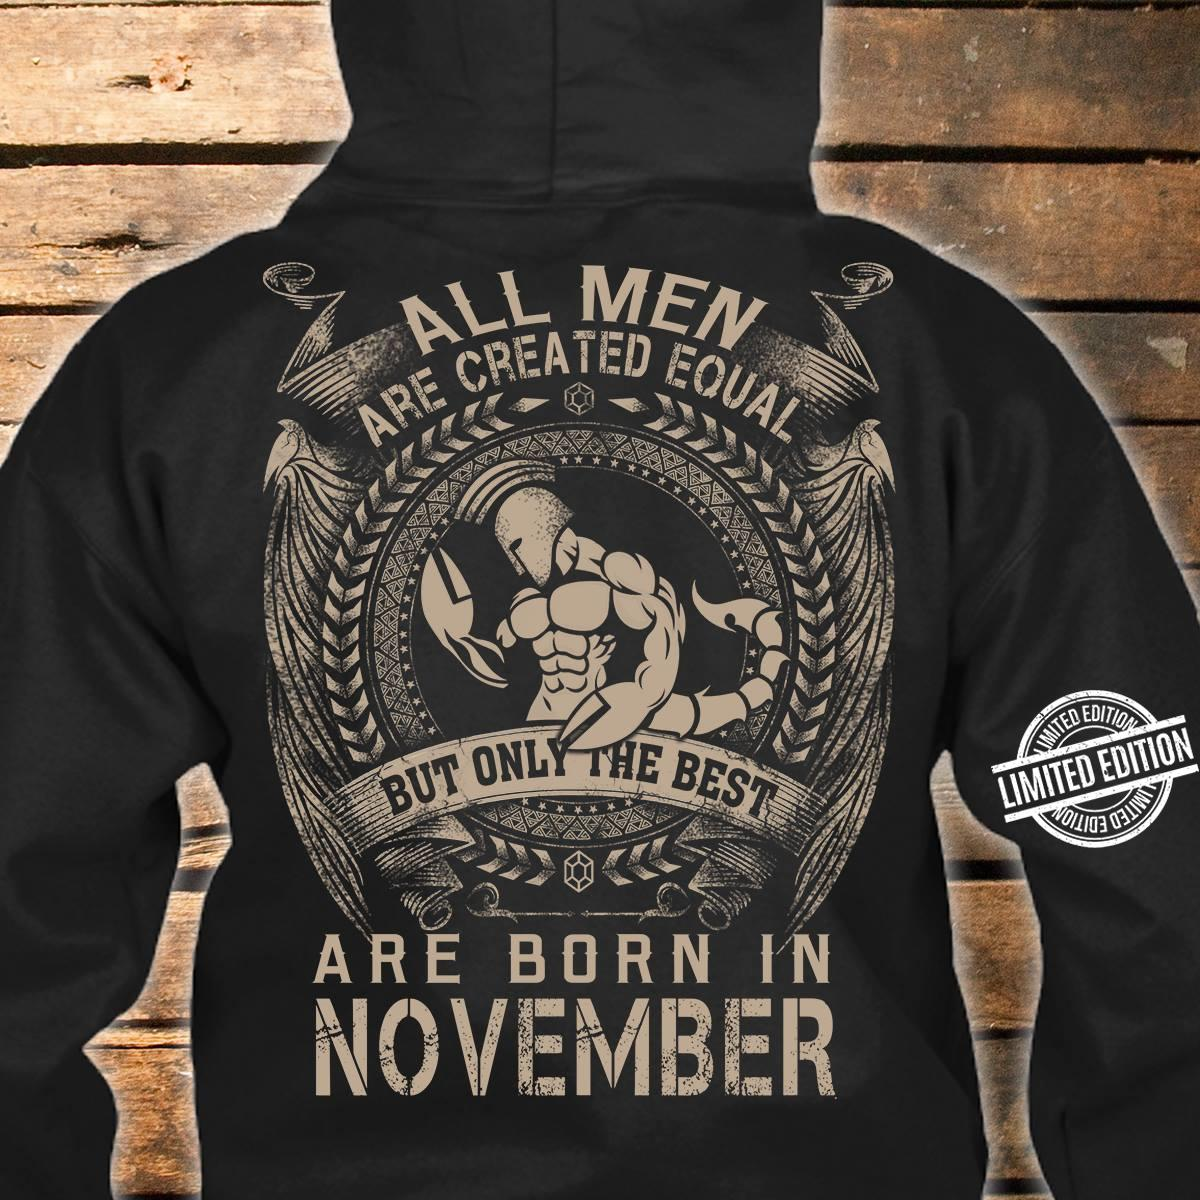 All Men Are Creared Equal But Only The Best Are Born In November Shirt